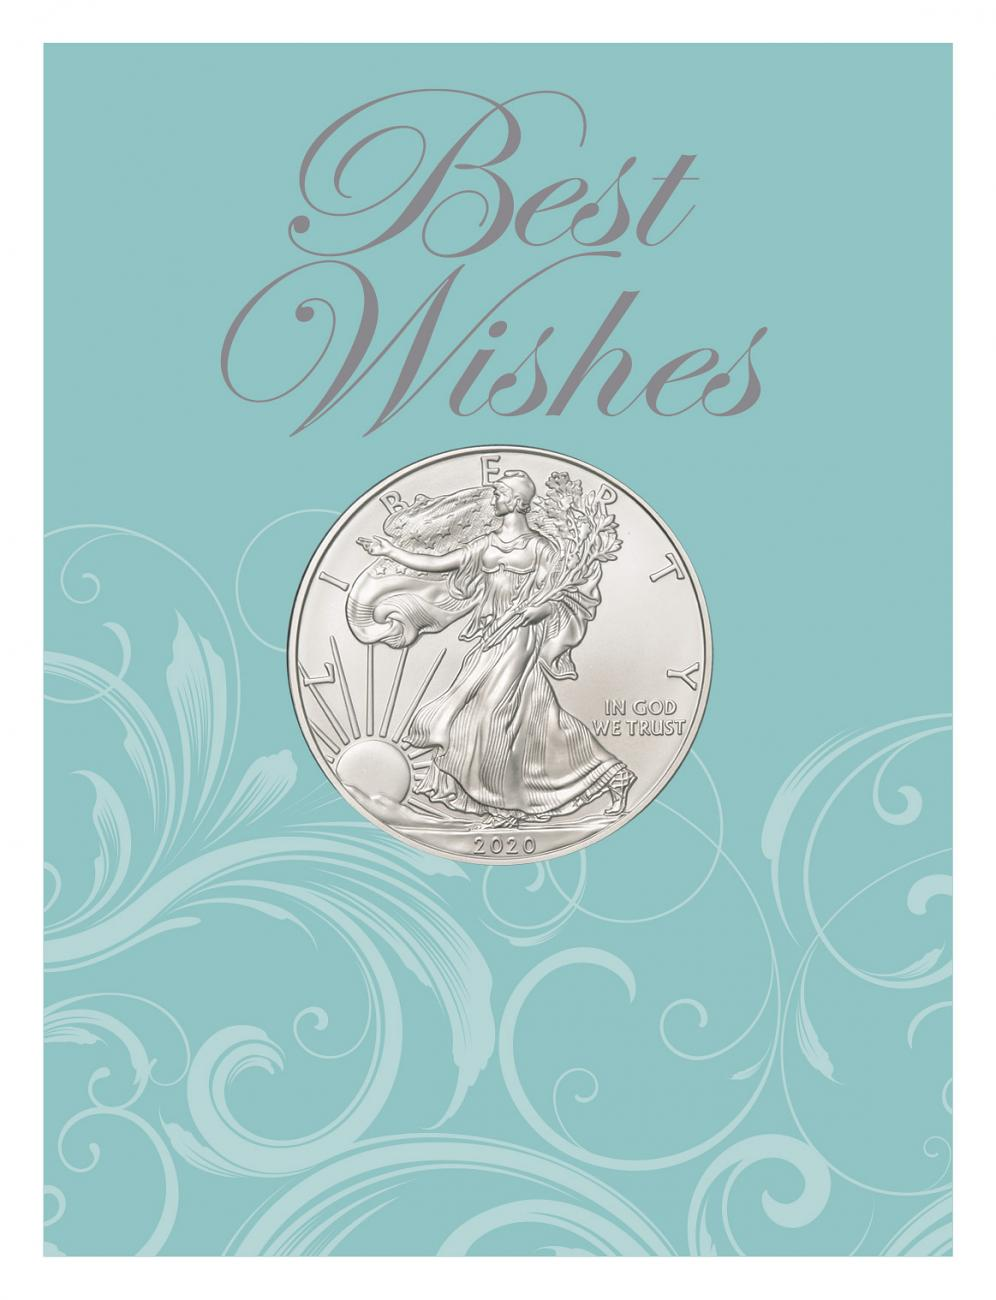 2020 1 oz. American Silver Eagle $1 Coin Best Wishes Coin Card BU